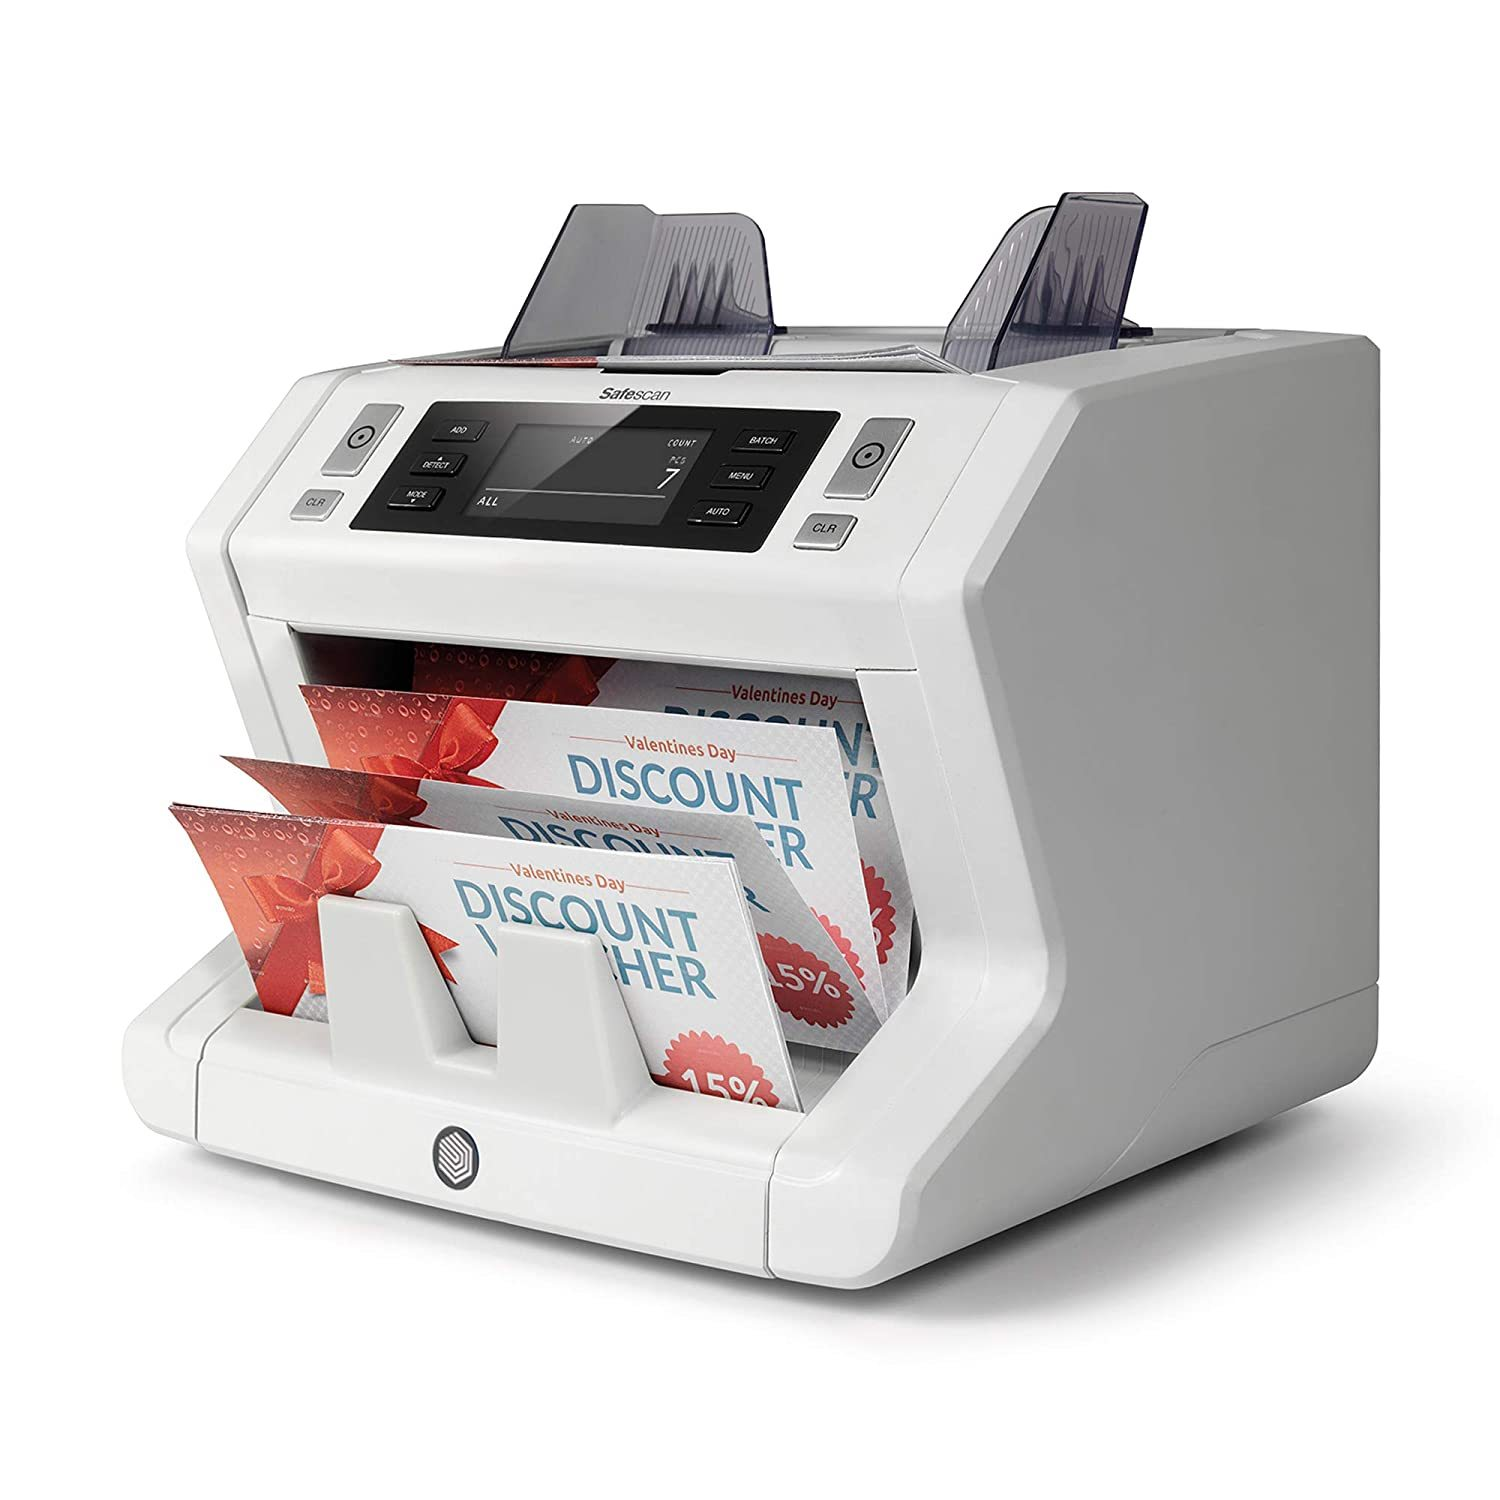 2650 - High-Speed Bill Counter for Sorted Bills with 3-Point Counterfeit Detection